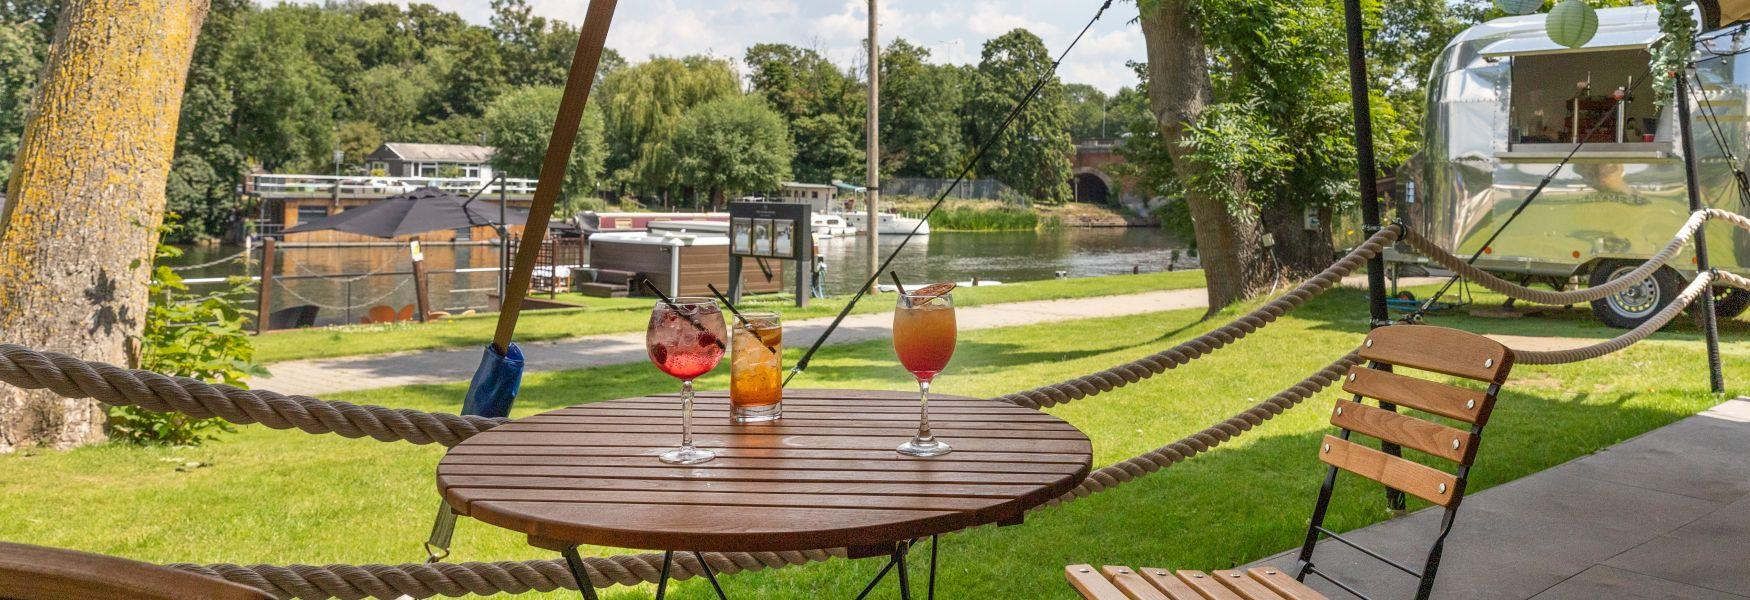 Runnymede Hotel and Spa River Hideout